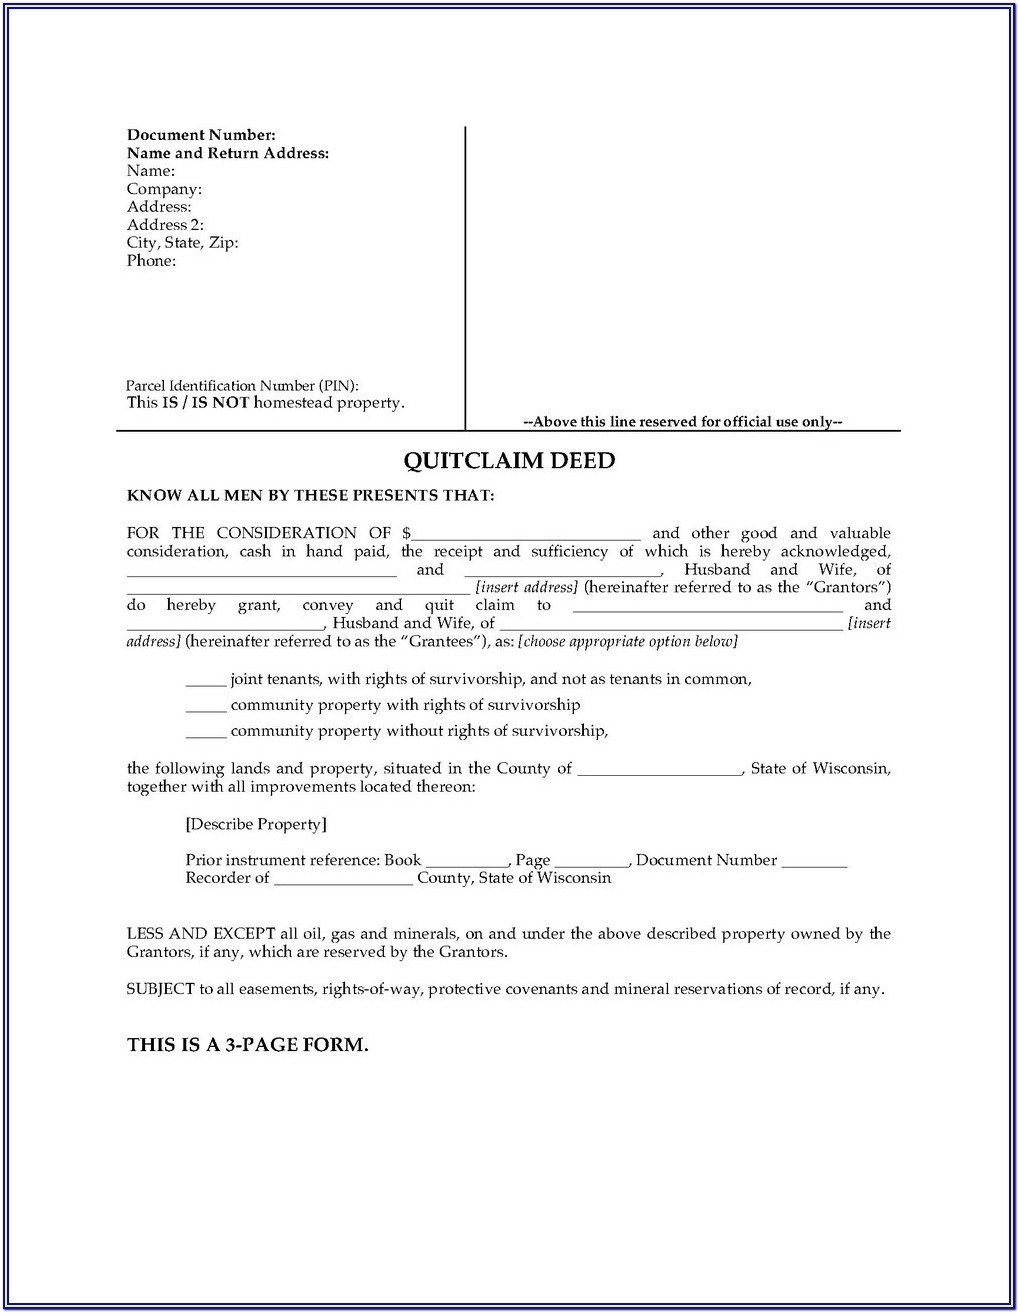 Pierce County Washington Quit Claim Deed Form